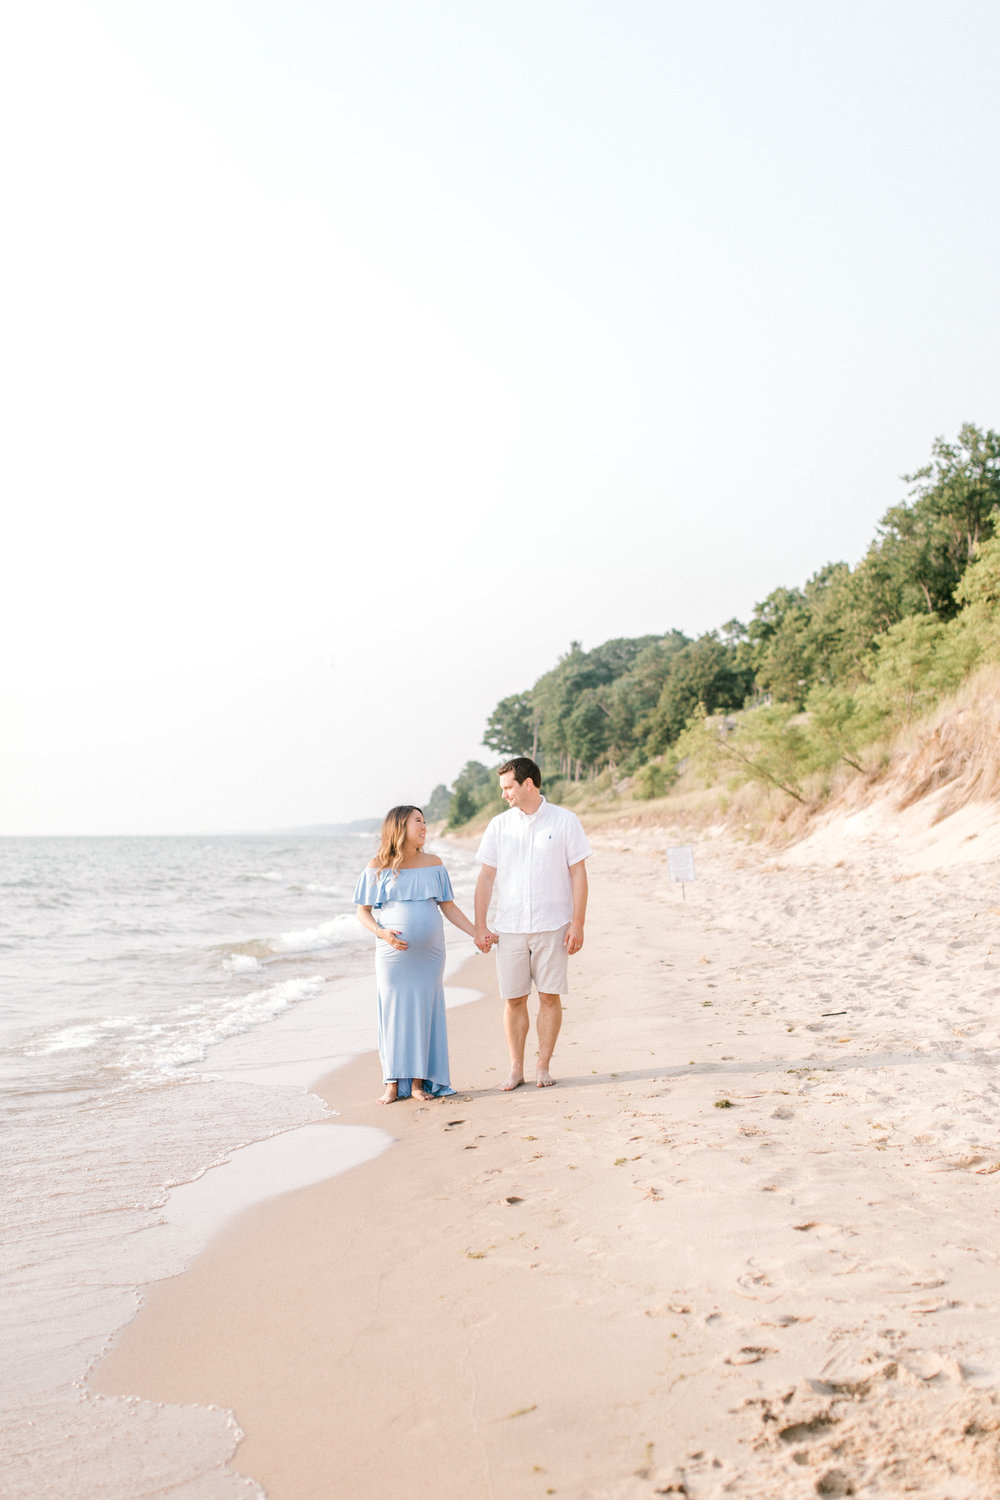 Baby Bump on the Beach | Jacques Family | Lake Michigan | Maternity Fashion | Laurenda Marie Photography